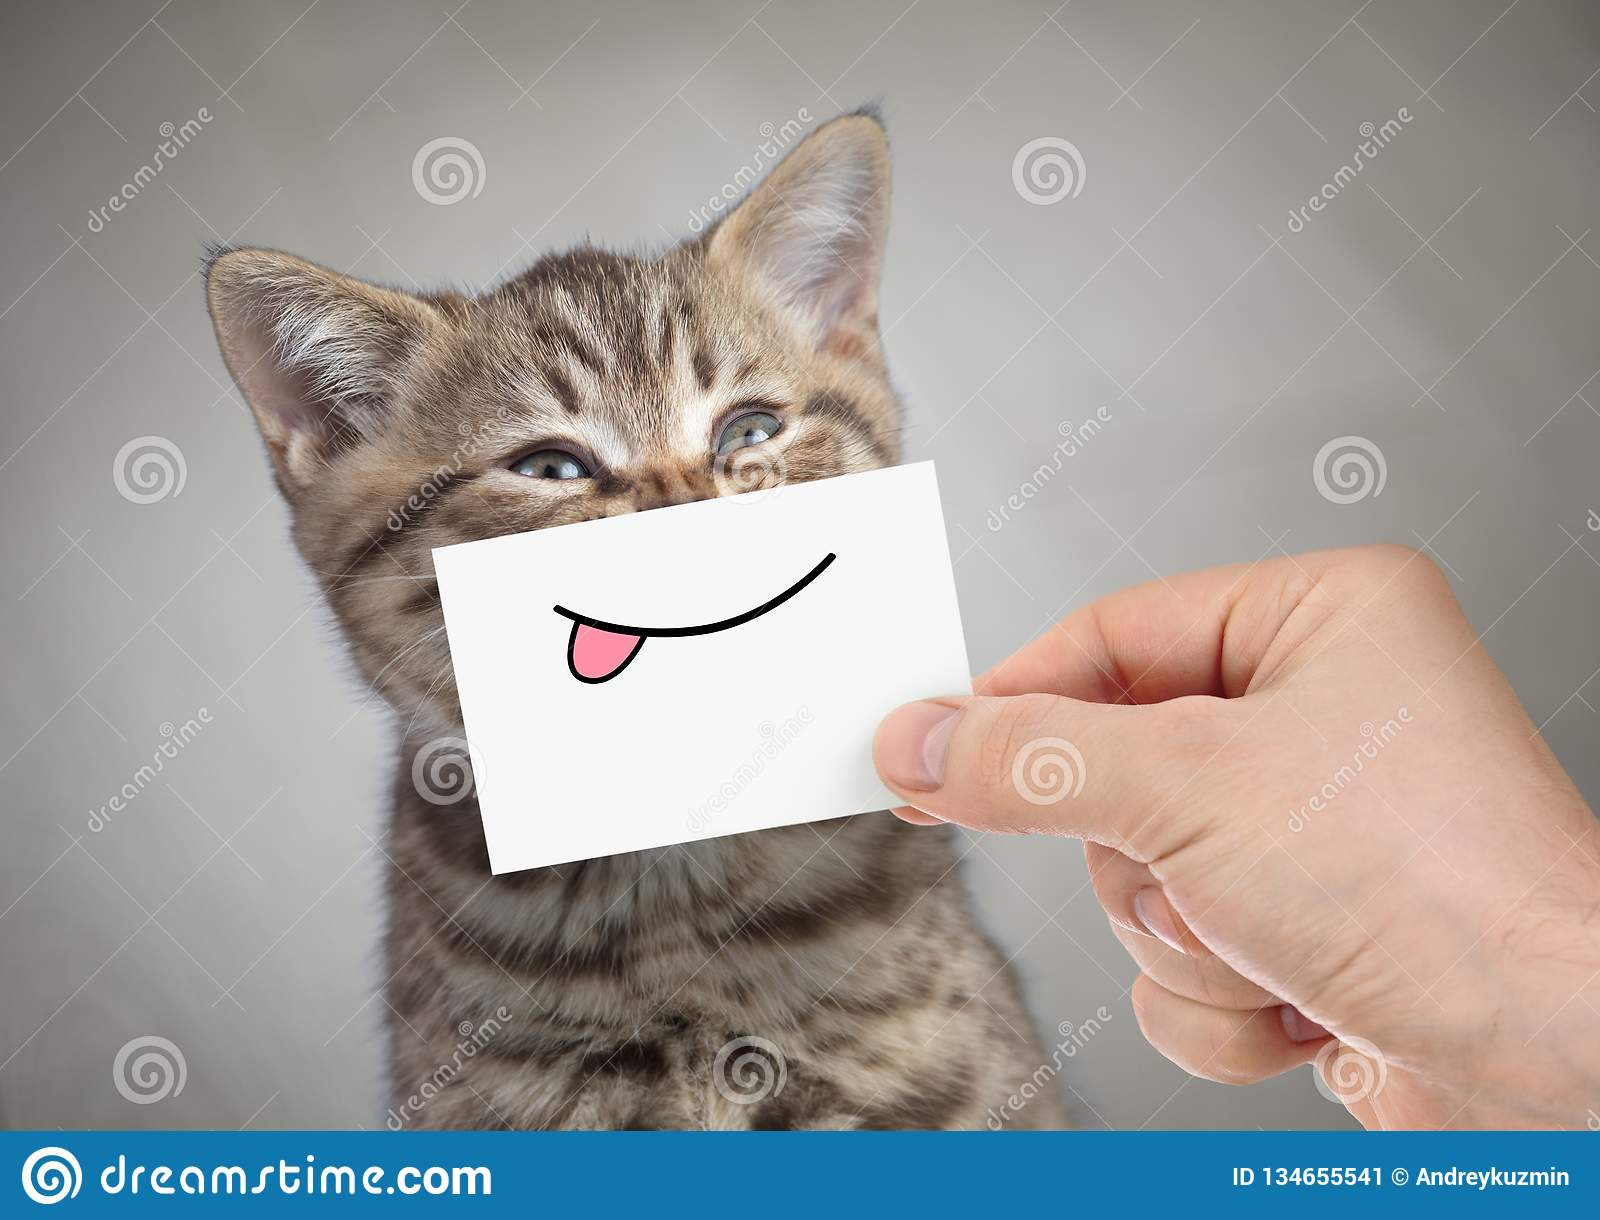 Funny cat smiling with tongue